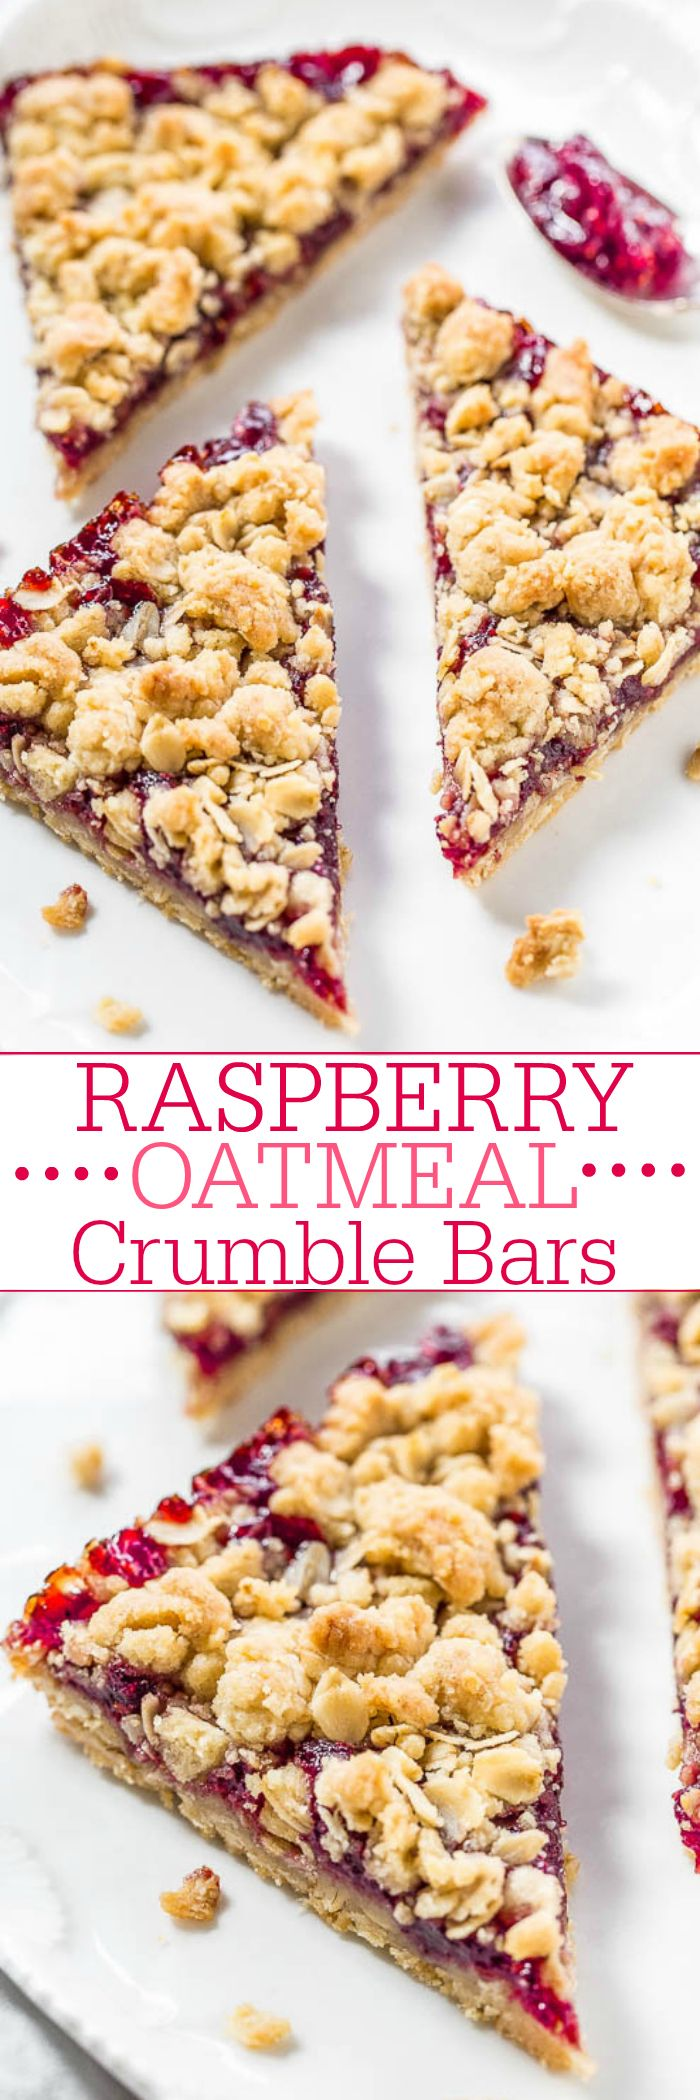 Raspberry Oatmeal Crumble Bars - Fast, easy, no-mixer bars great for breakfast, snacks, or a healthy dessert!! The big crumbles are irresistible! Fresh raspberries not needed so you can make the bars year round!!                                                                                                                                                                                 More